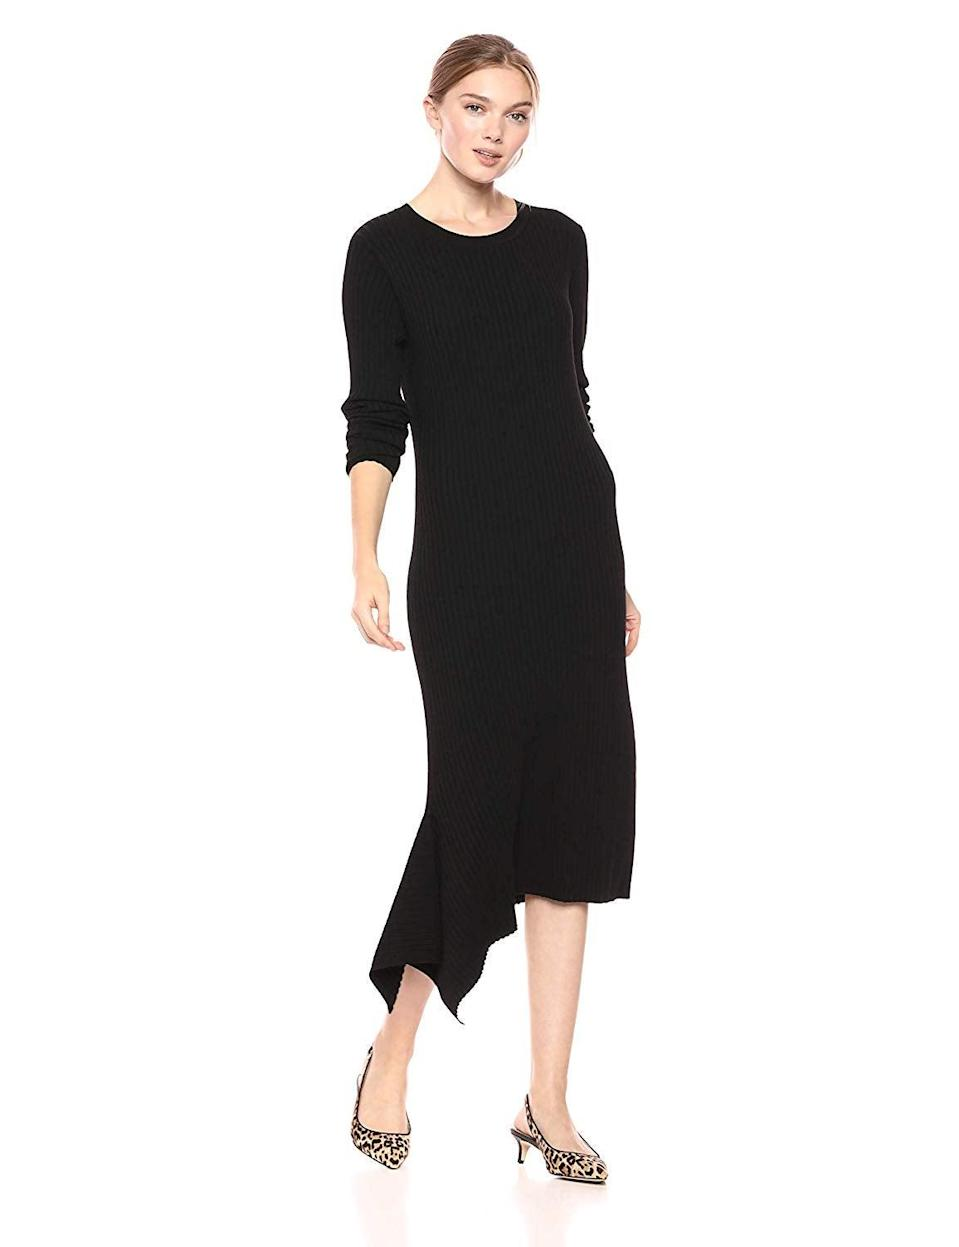 "<br><br><strong>Cable Stitch</strong> Handkerchief Hem Ribbed Dress, $, available at <a href=""https://amzn.to/32uRUGY"" rel=""nofollow noopener"" target=""_blank"" data-ylk=""slk:Amazon"" class=""link rapid-noclick-resp"">Amazon</a>"